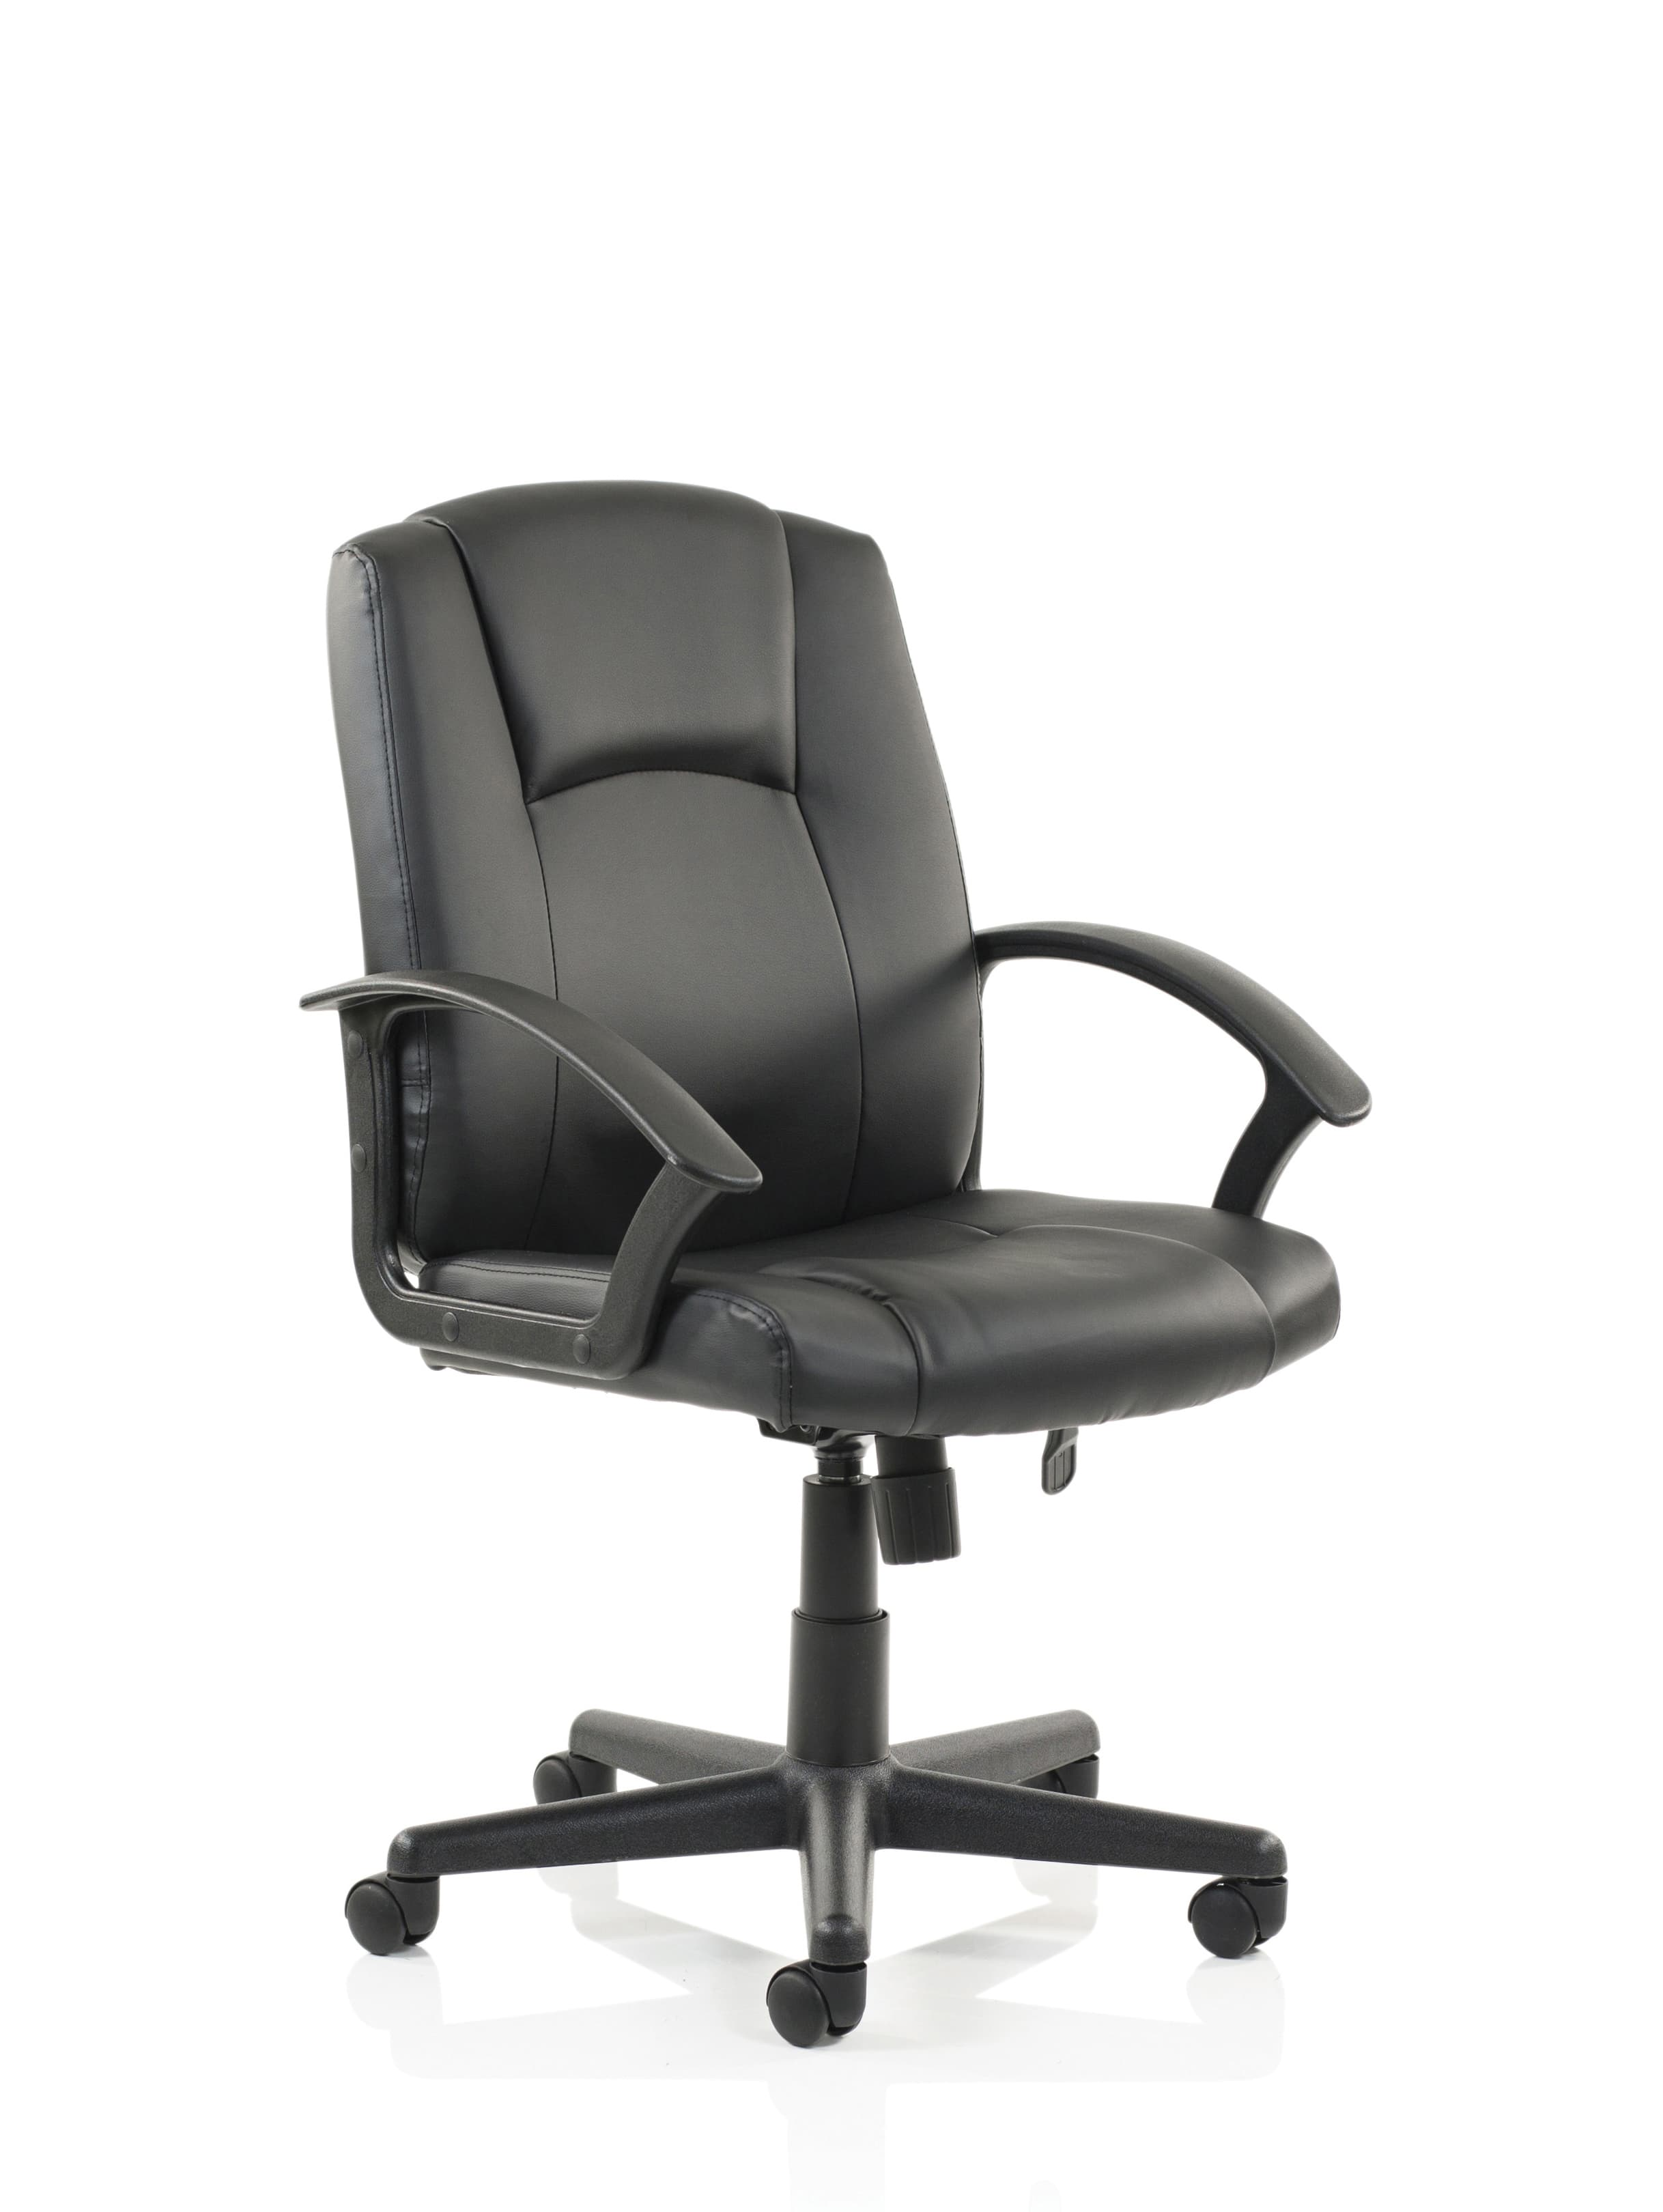 Bella Executive Manager Chair Black Leather